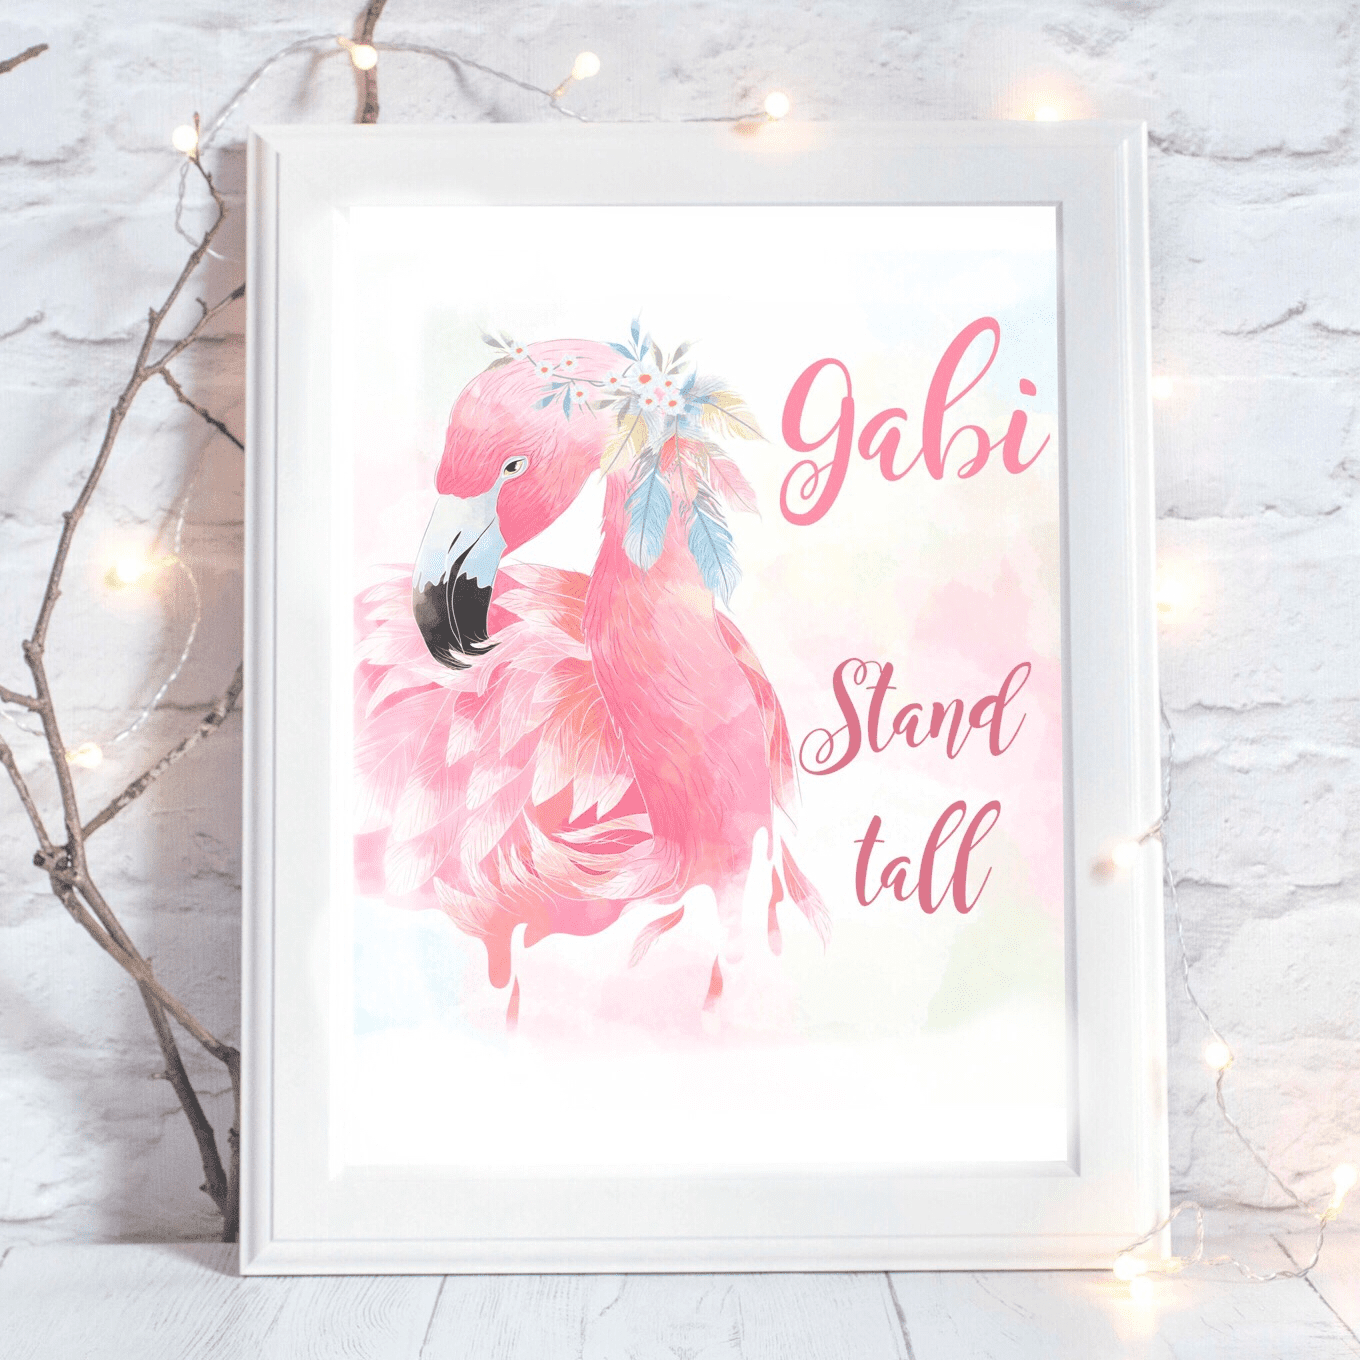 personalised-unframed-flamingo-stand-tall-print-12091-p.png